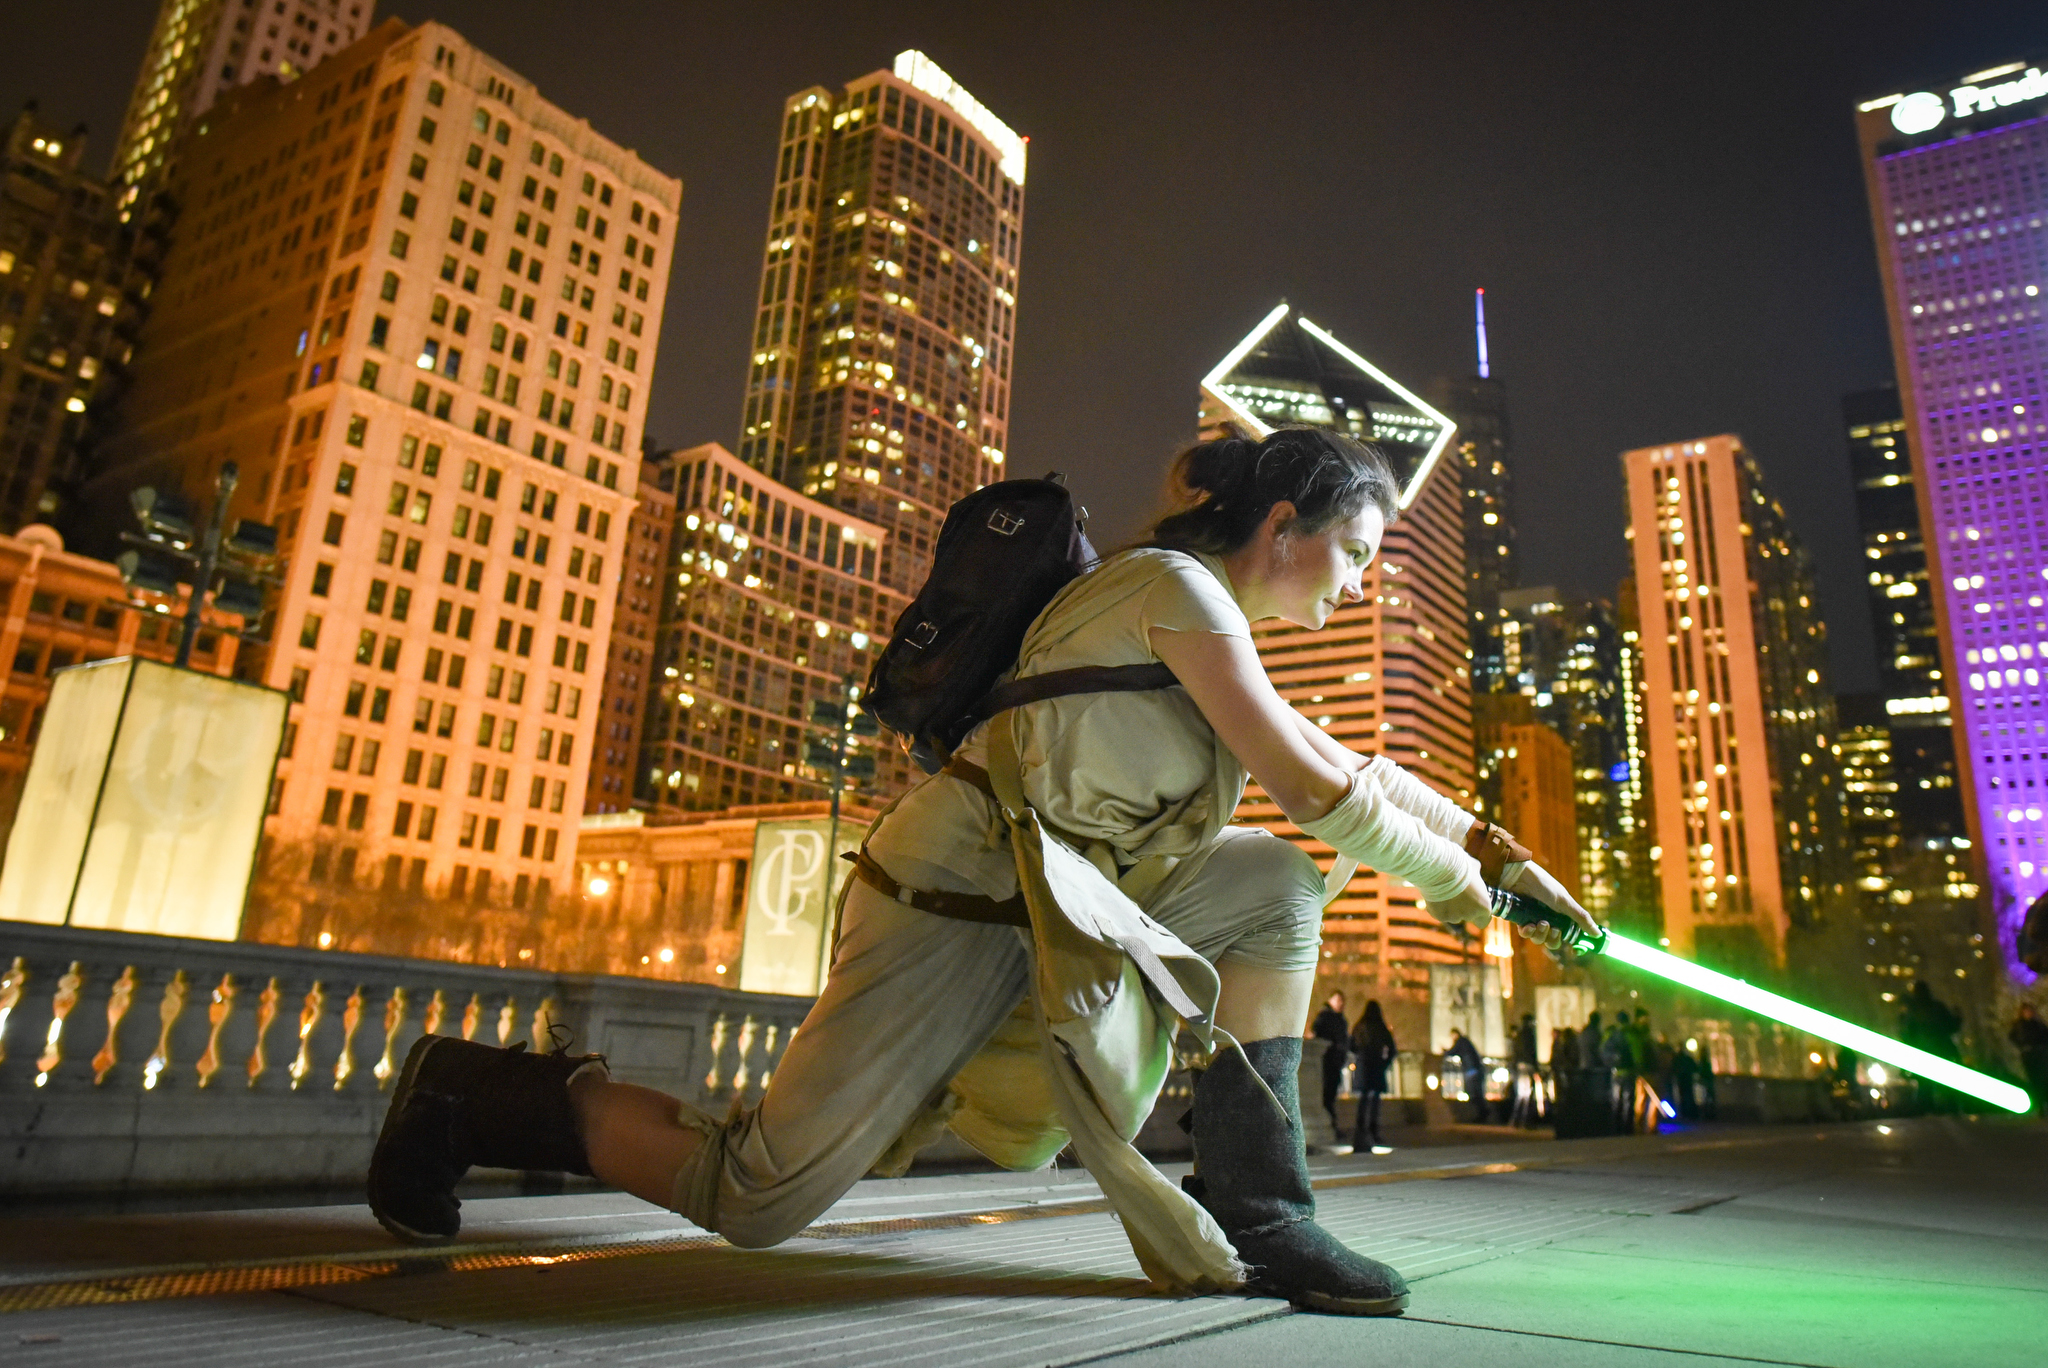 2019.04.14 - Star Wars Celebration Chicago 288892.JPG